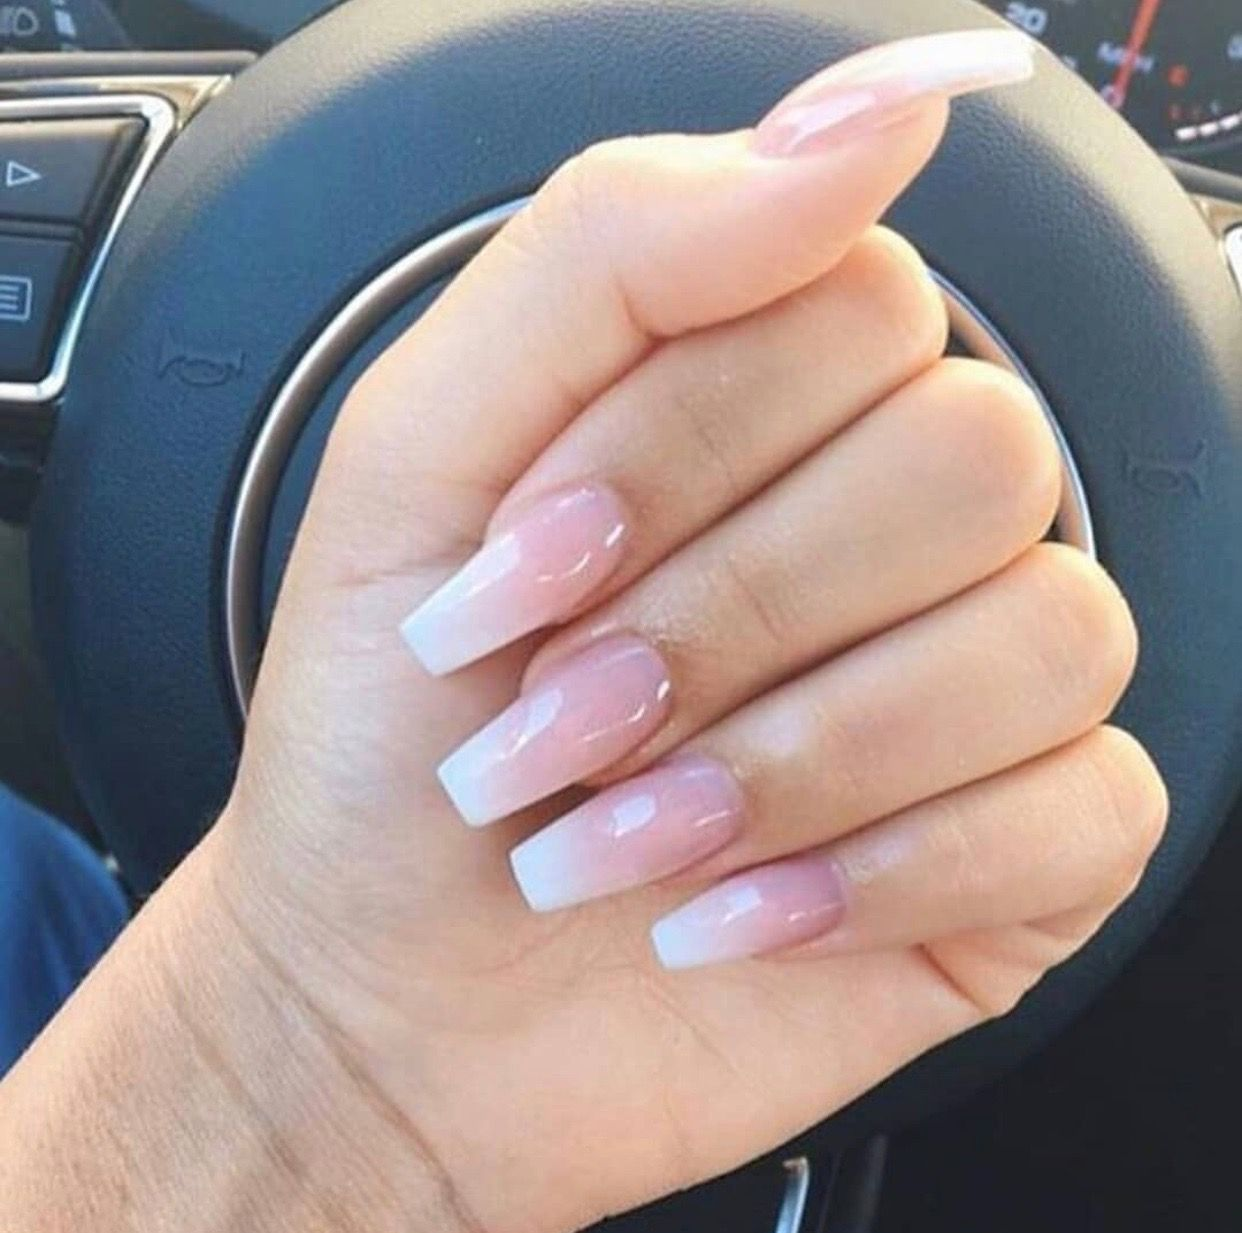 Pin By Candaceniicole On Nail Art Acrylic Nails Coffin Pink Pink Ombre Nails Ombre Nails